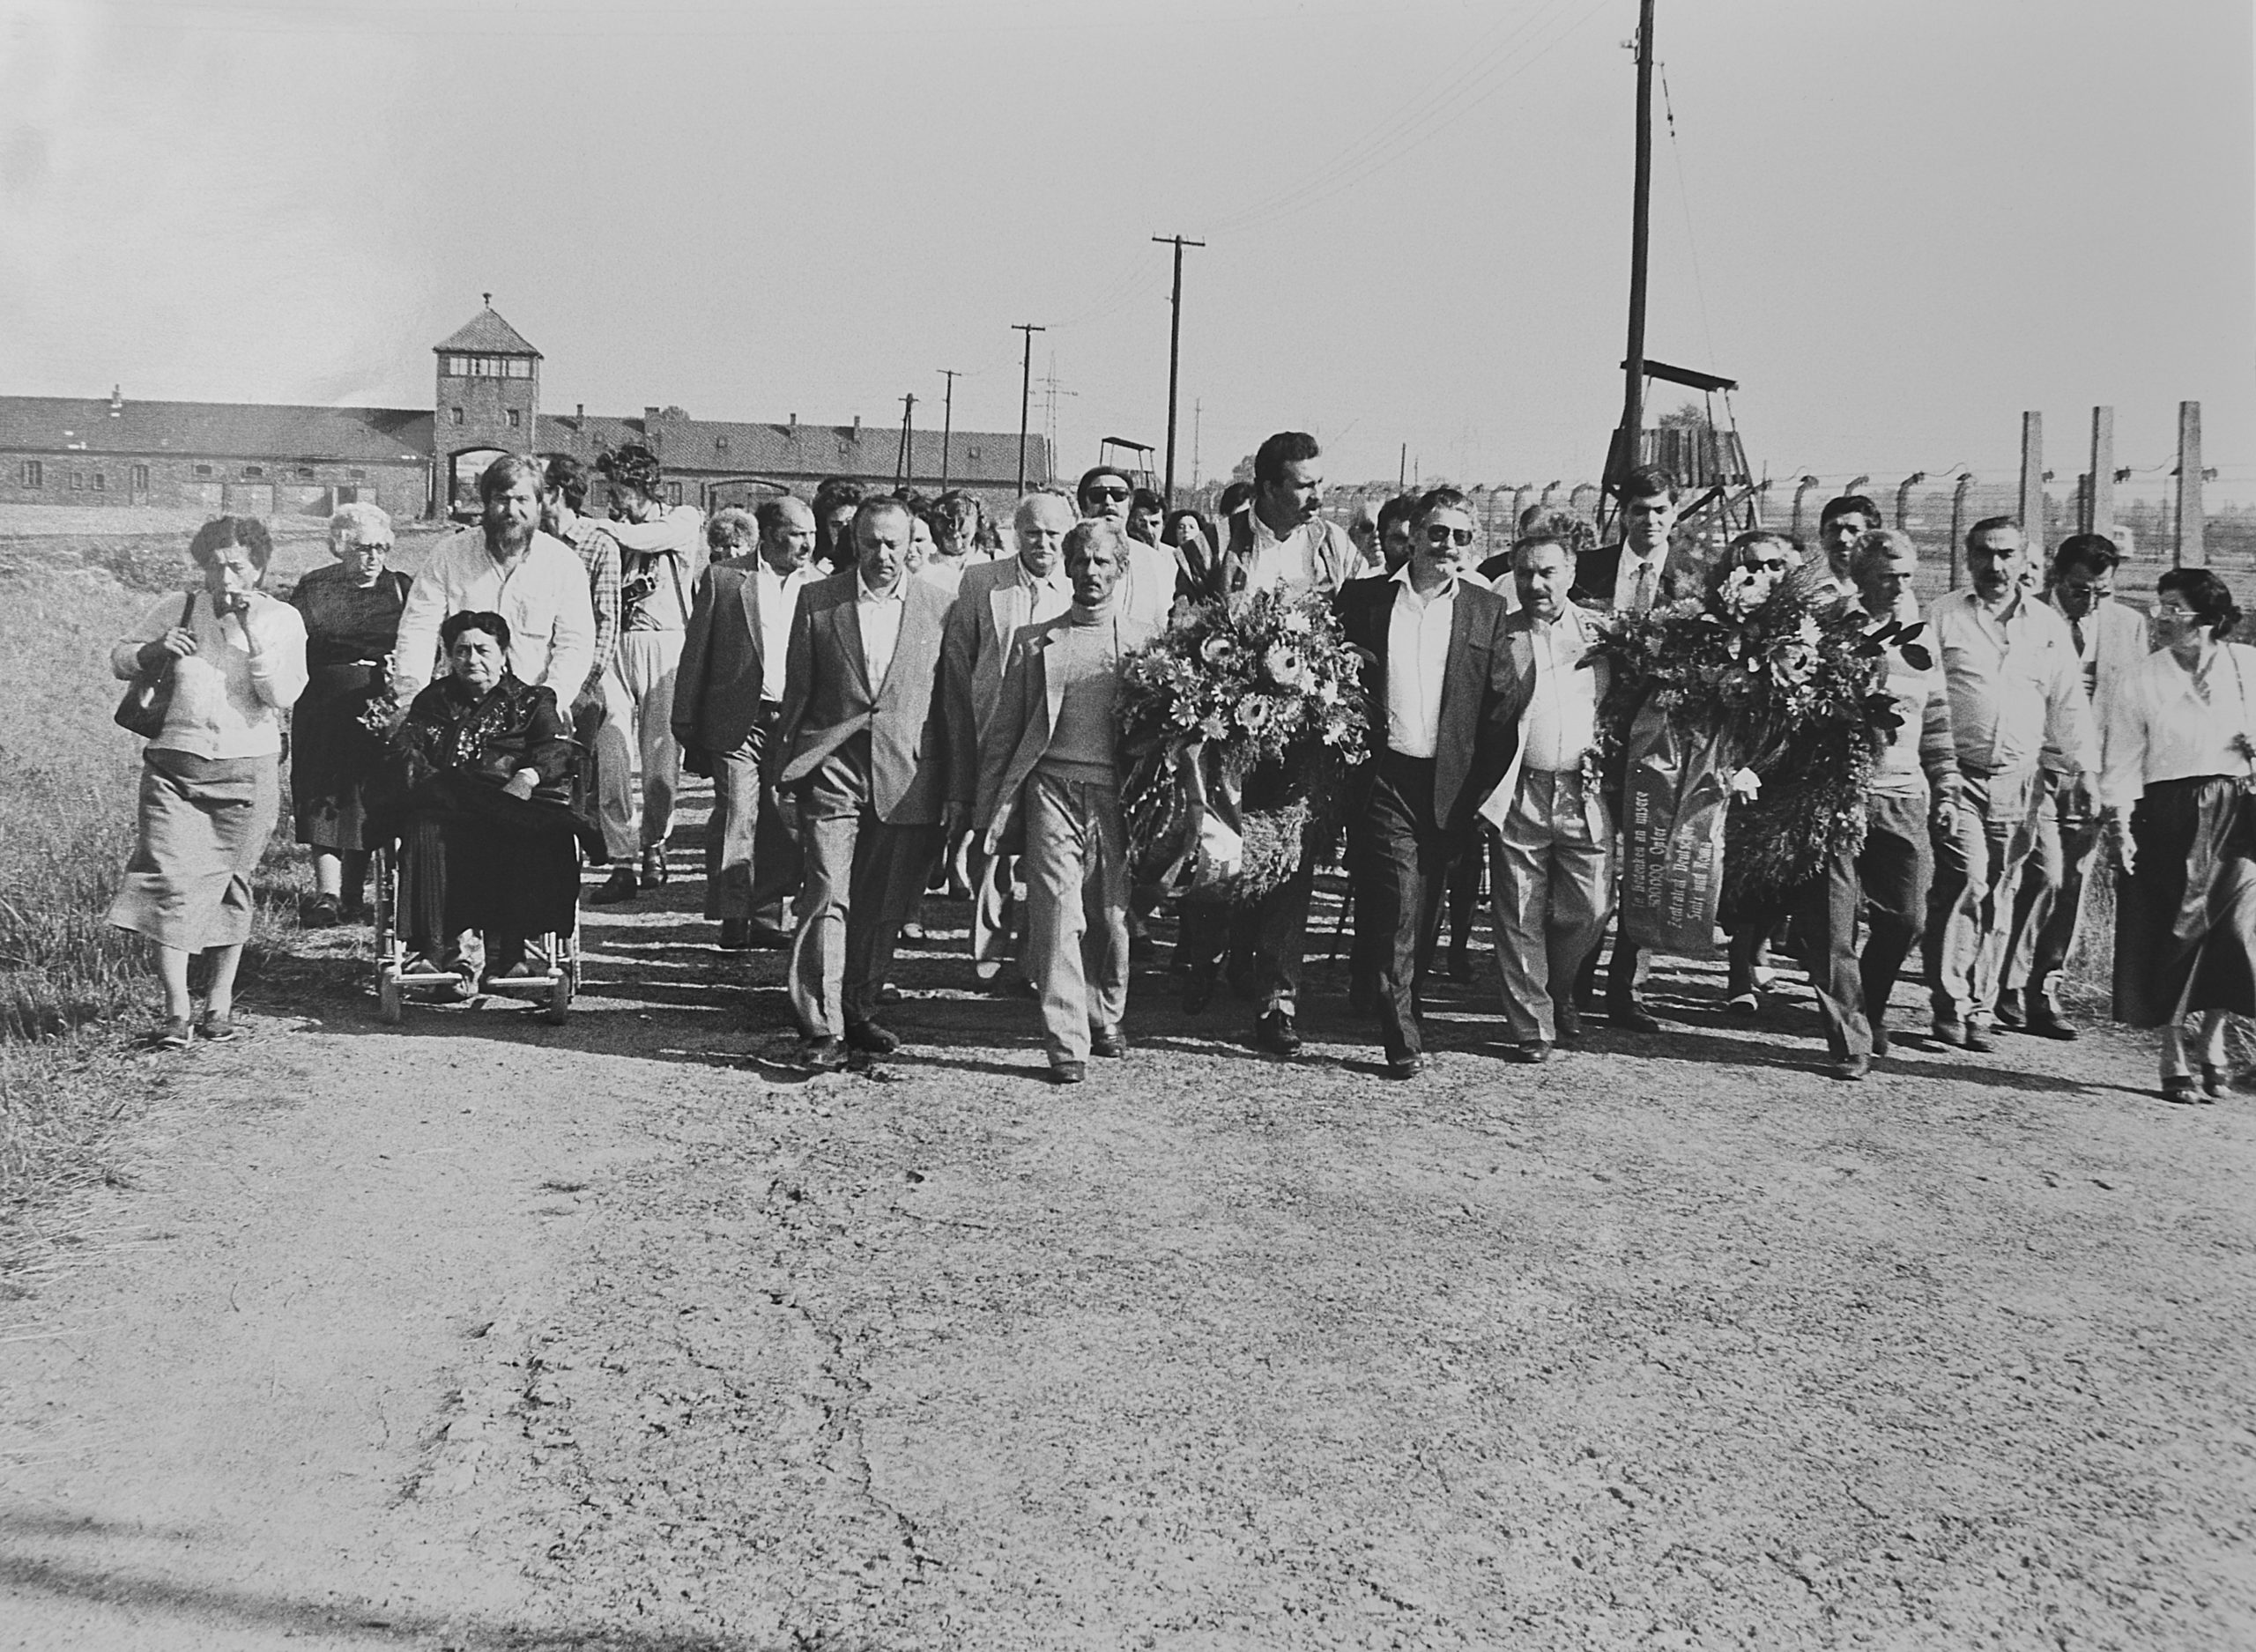 The first commemorative visit of the Central Council to Auschwitz, October 1985